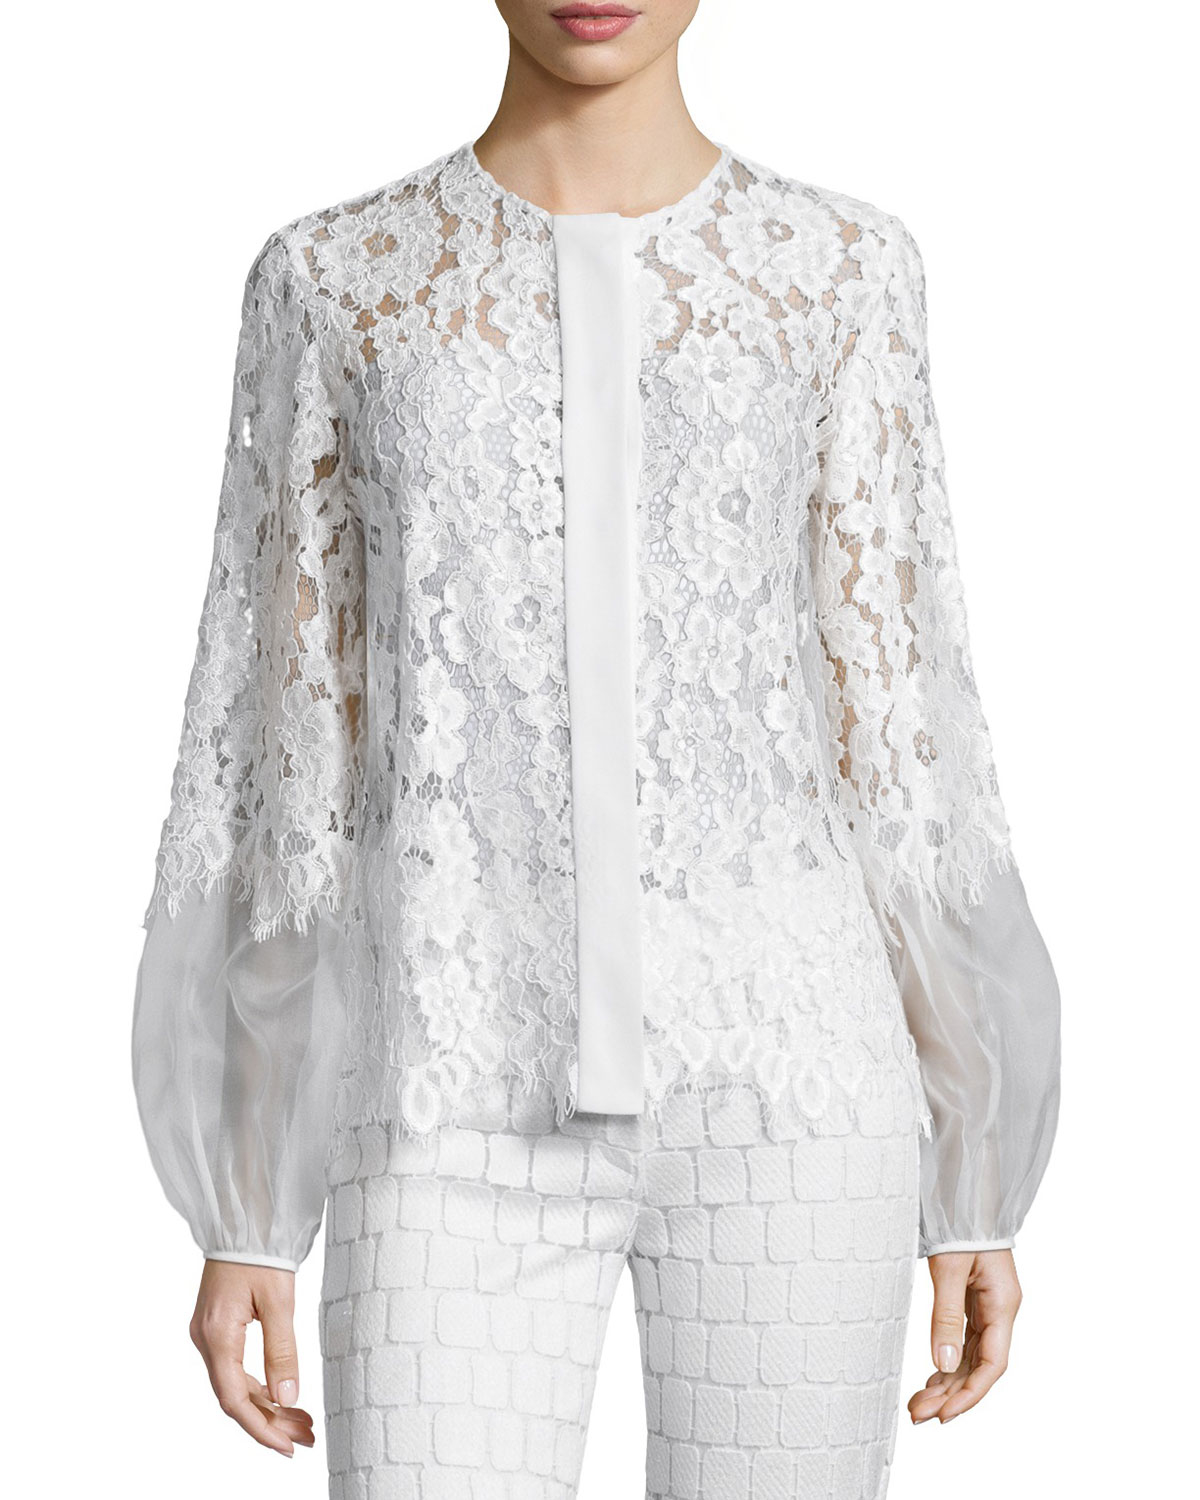 Lyst - Alexis Sue Long-sleeve Lace Blouse in White